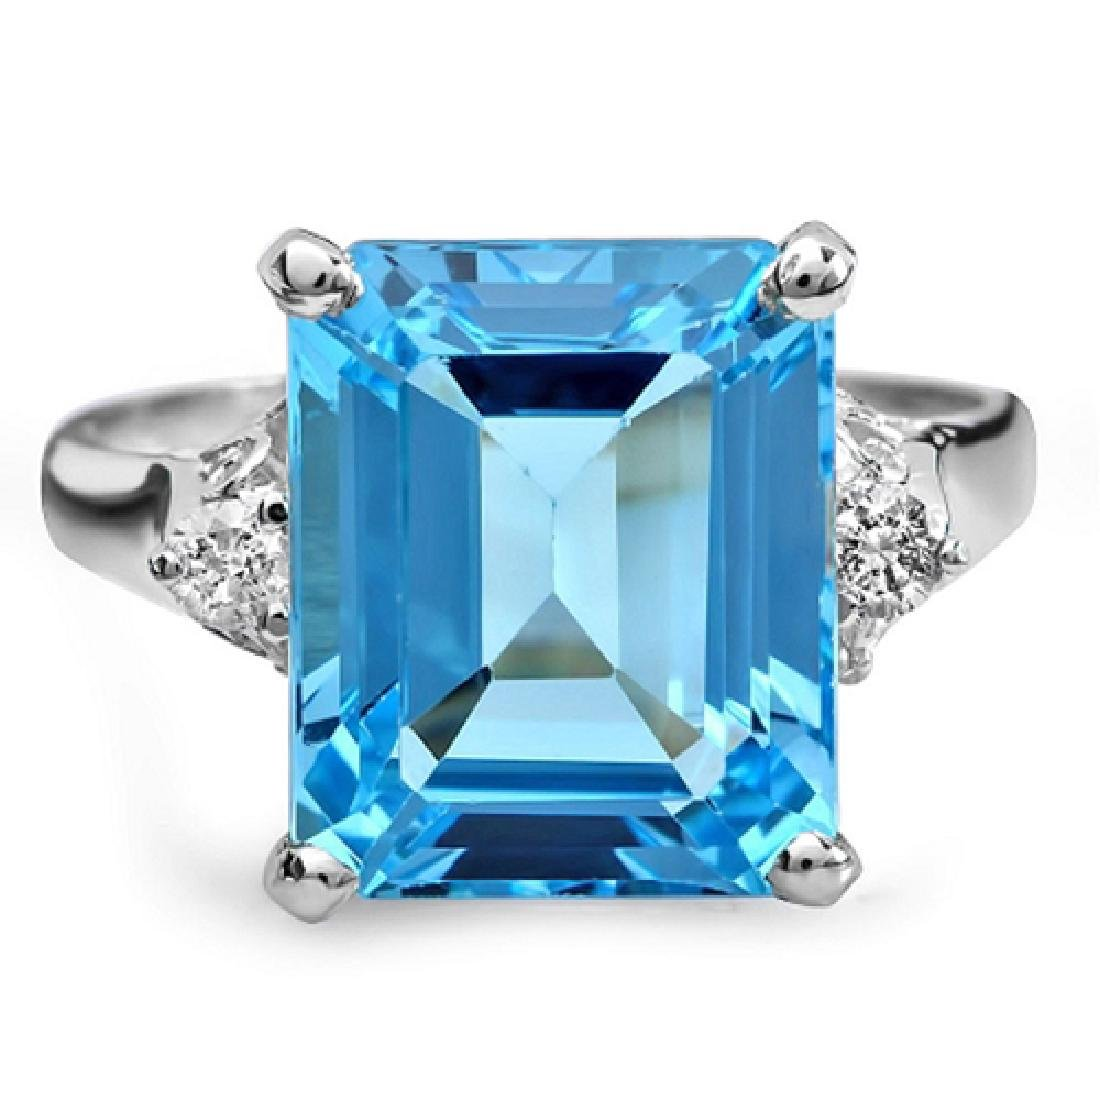 8.00 Carat Natural Topaz 18K Solid White Gold Diamond